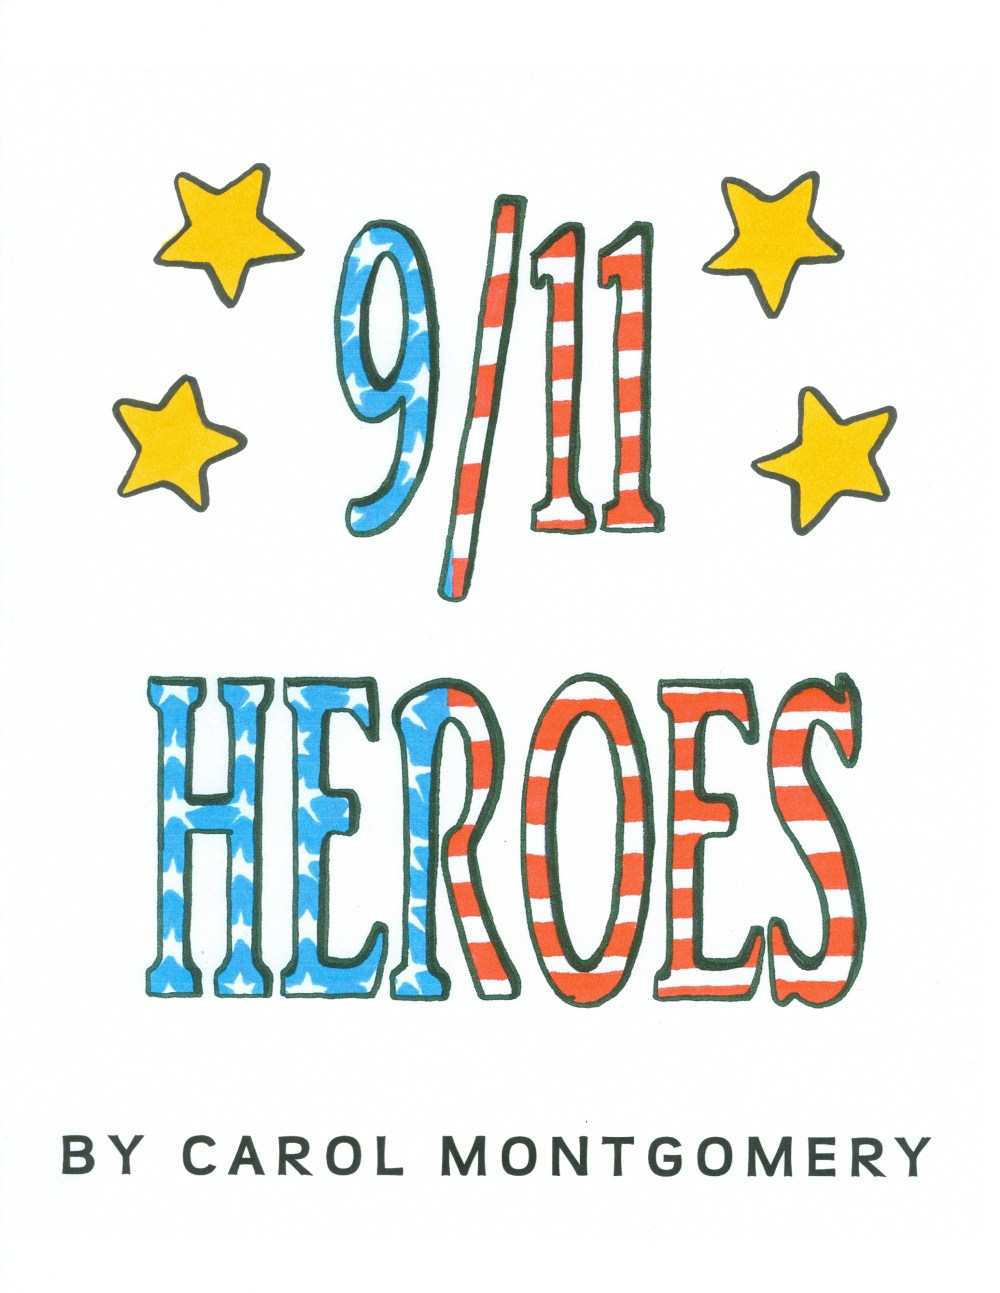 medium resolution of 9/11 Heroes\–for Patriot Day (R \u003d 2.7) - Readers Theater All Year